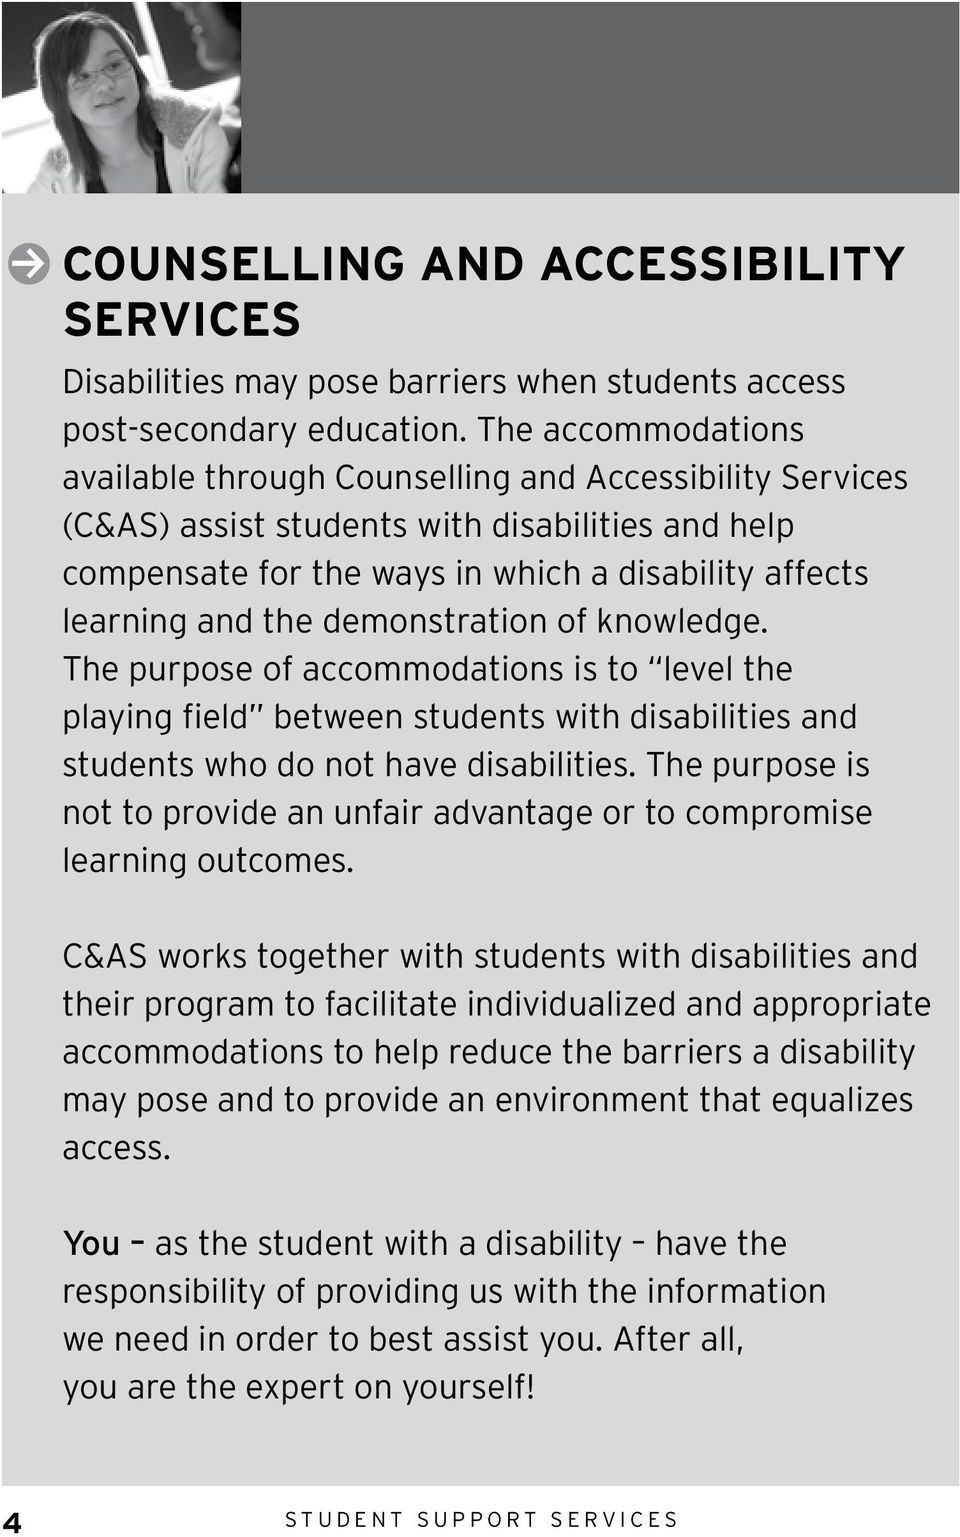 demonstration of knowledge. The purpose of accommodations is to level the playing field between students with disabilities and students who do not have disabilities.